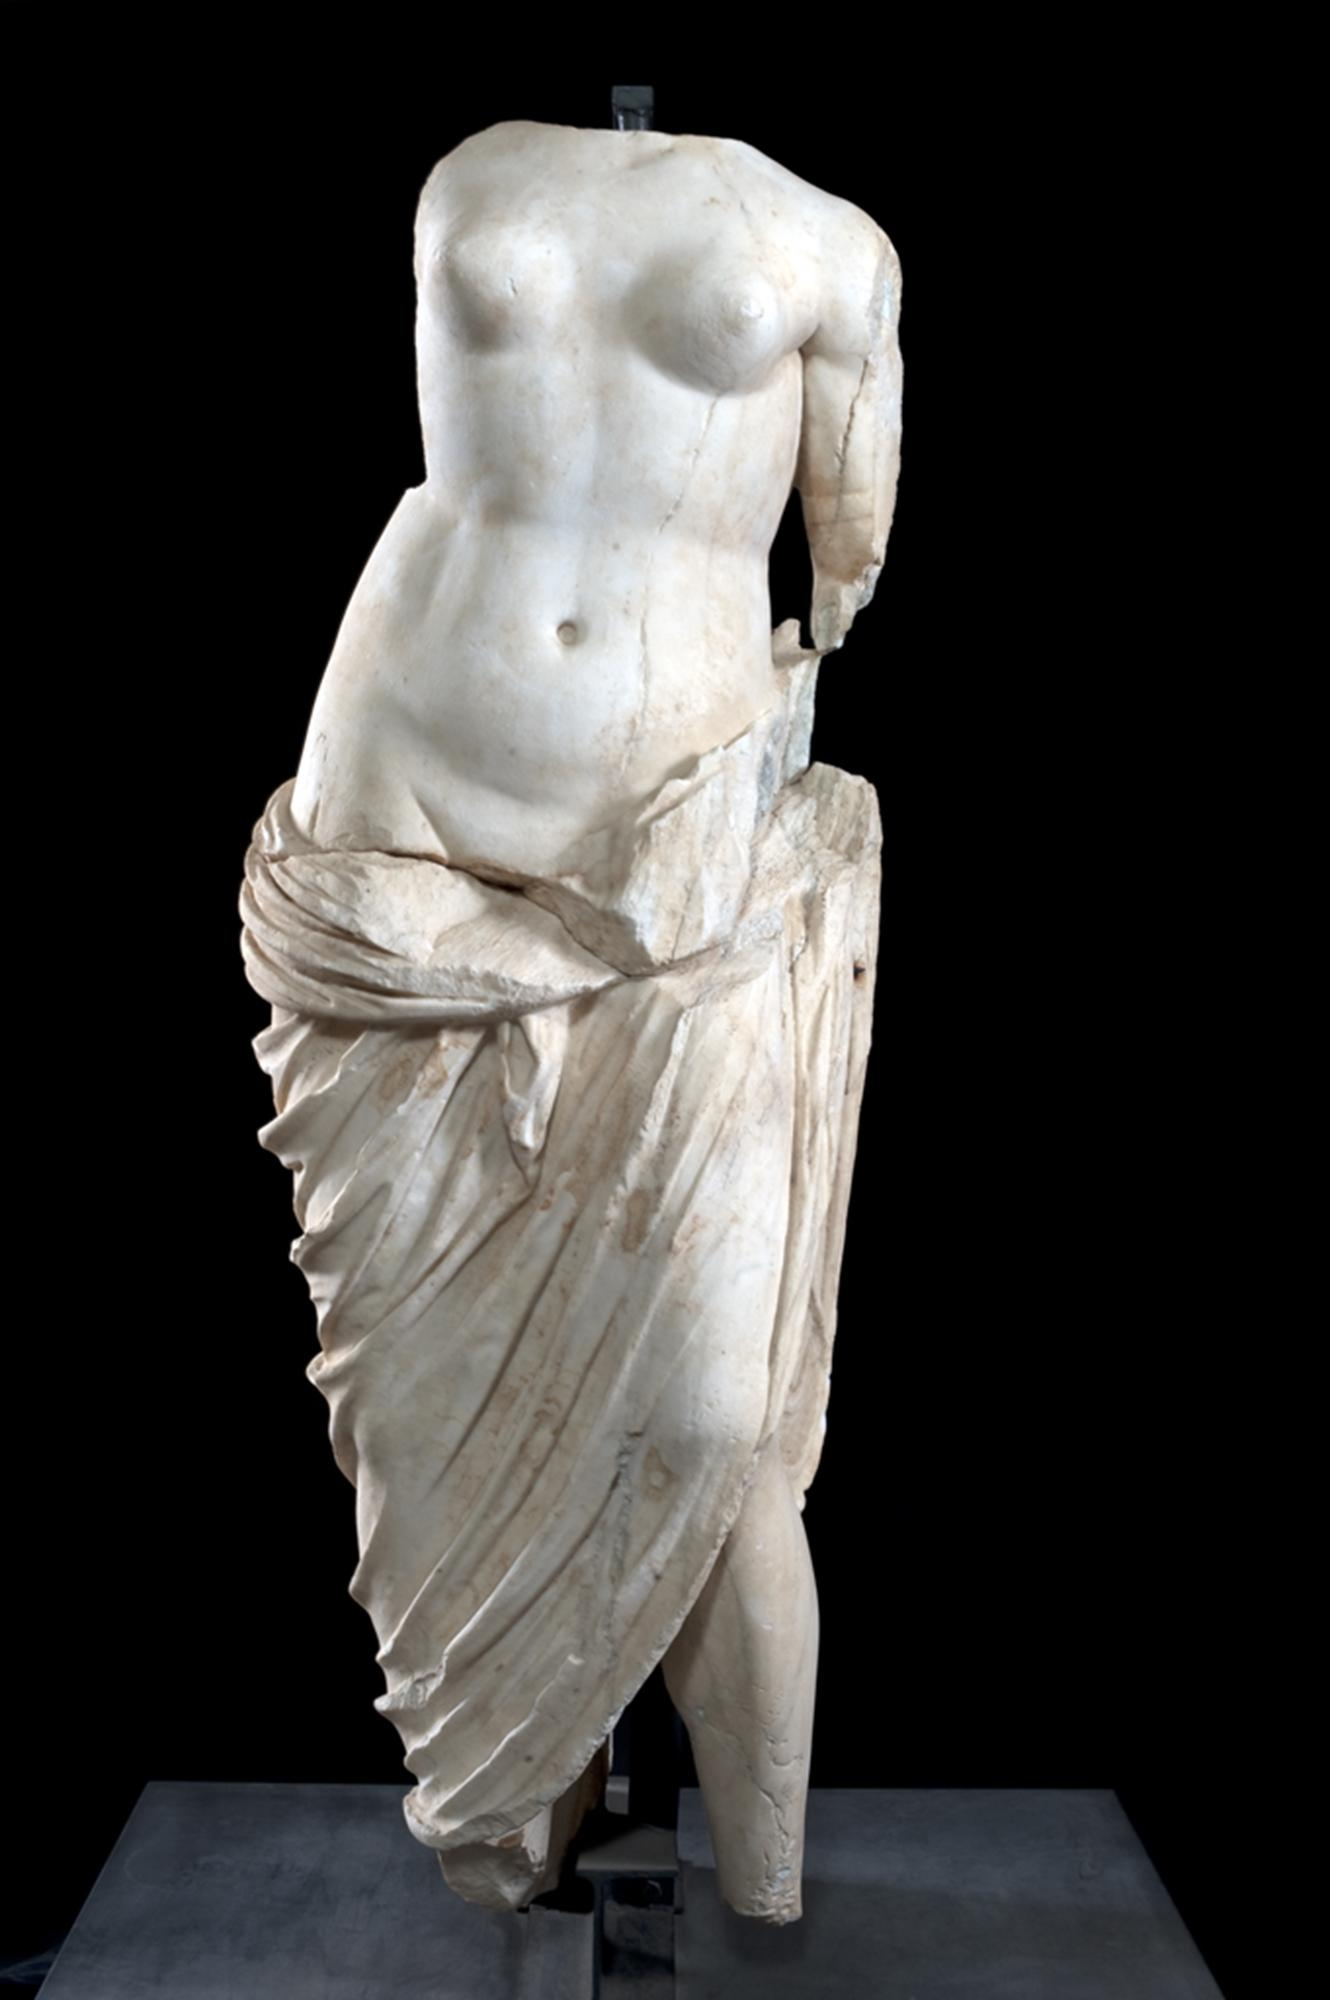 The Statue of Venus in Pentelic Marble (1st century A.D.) from the Roman Theatre of Teanum Sidicinum. – © Teano